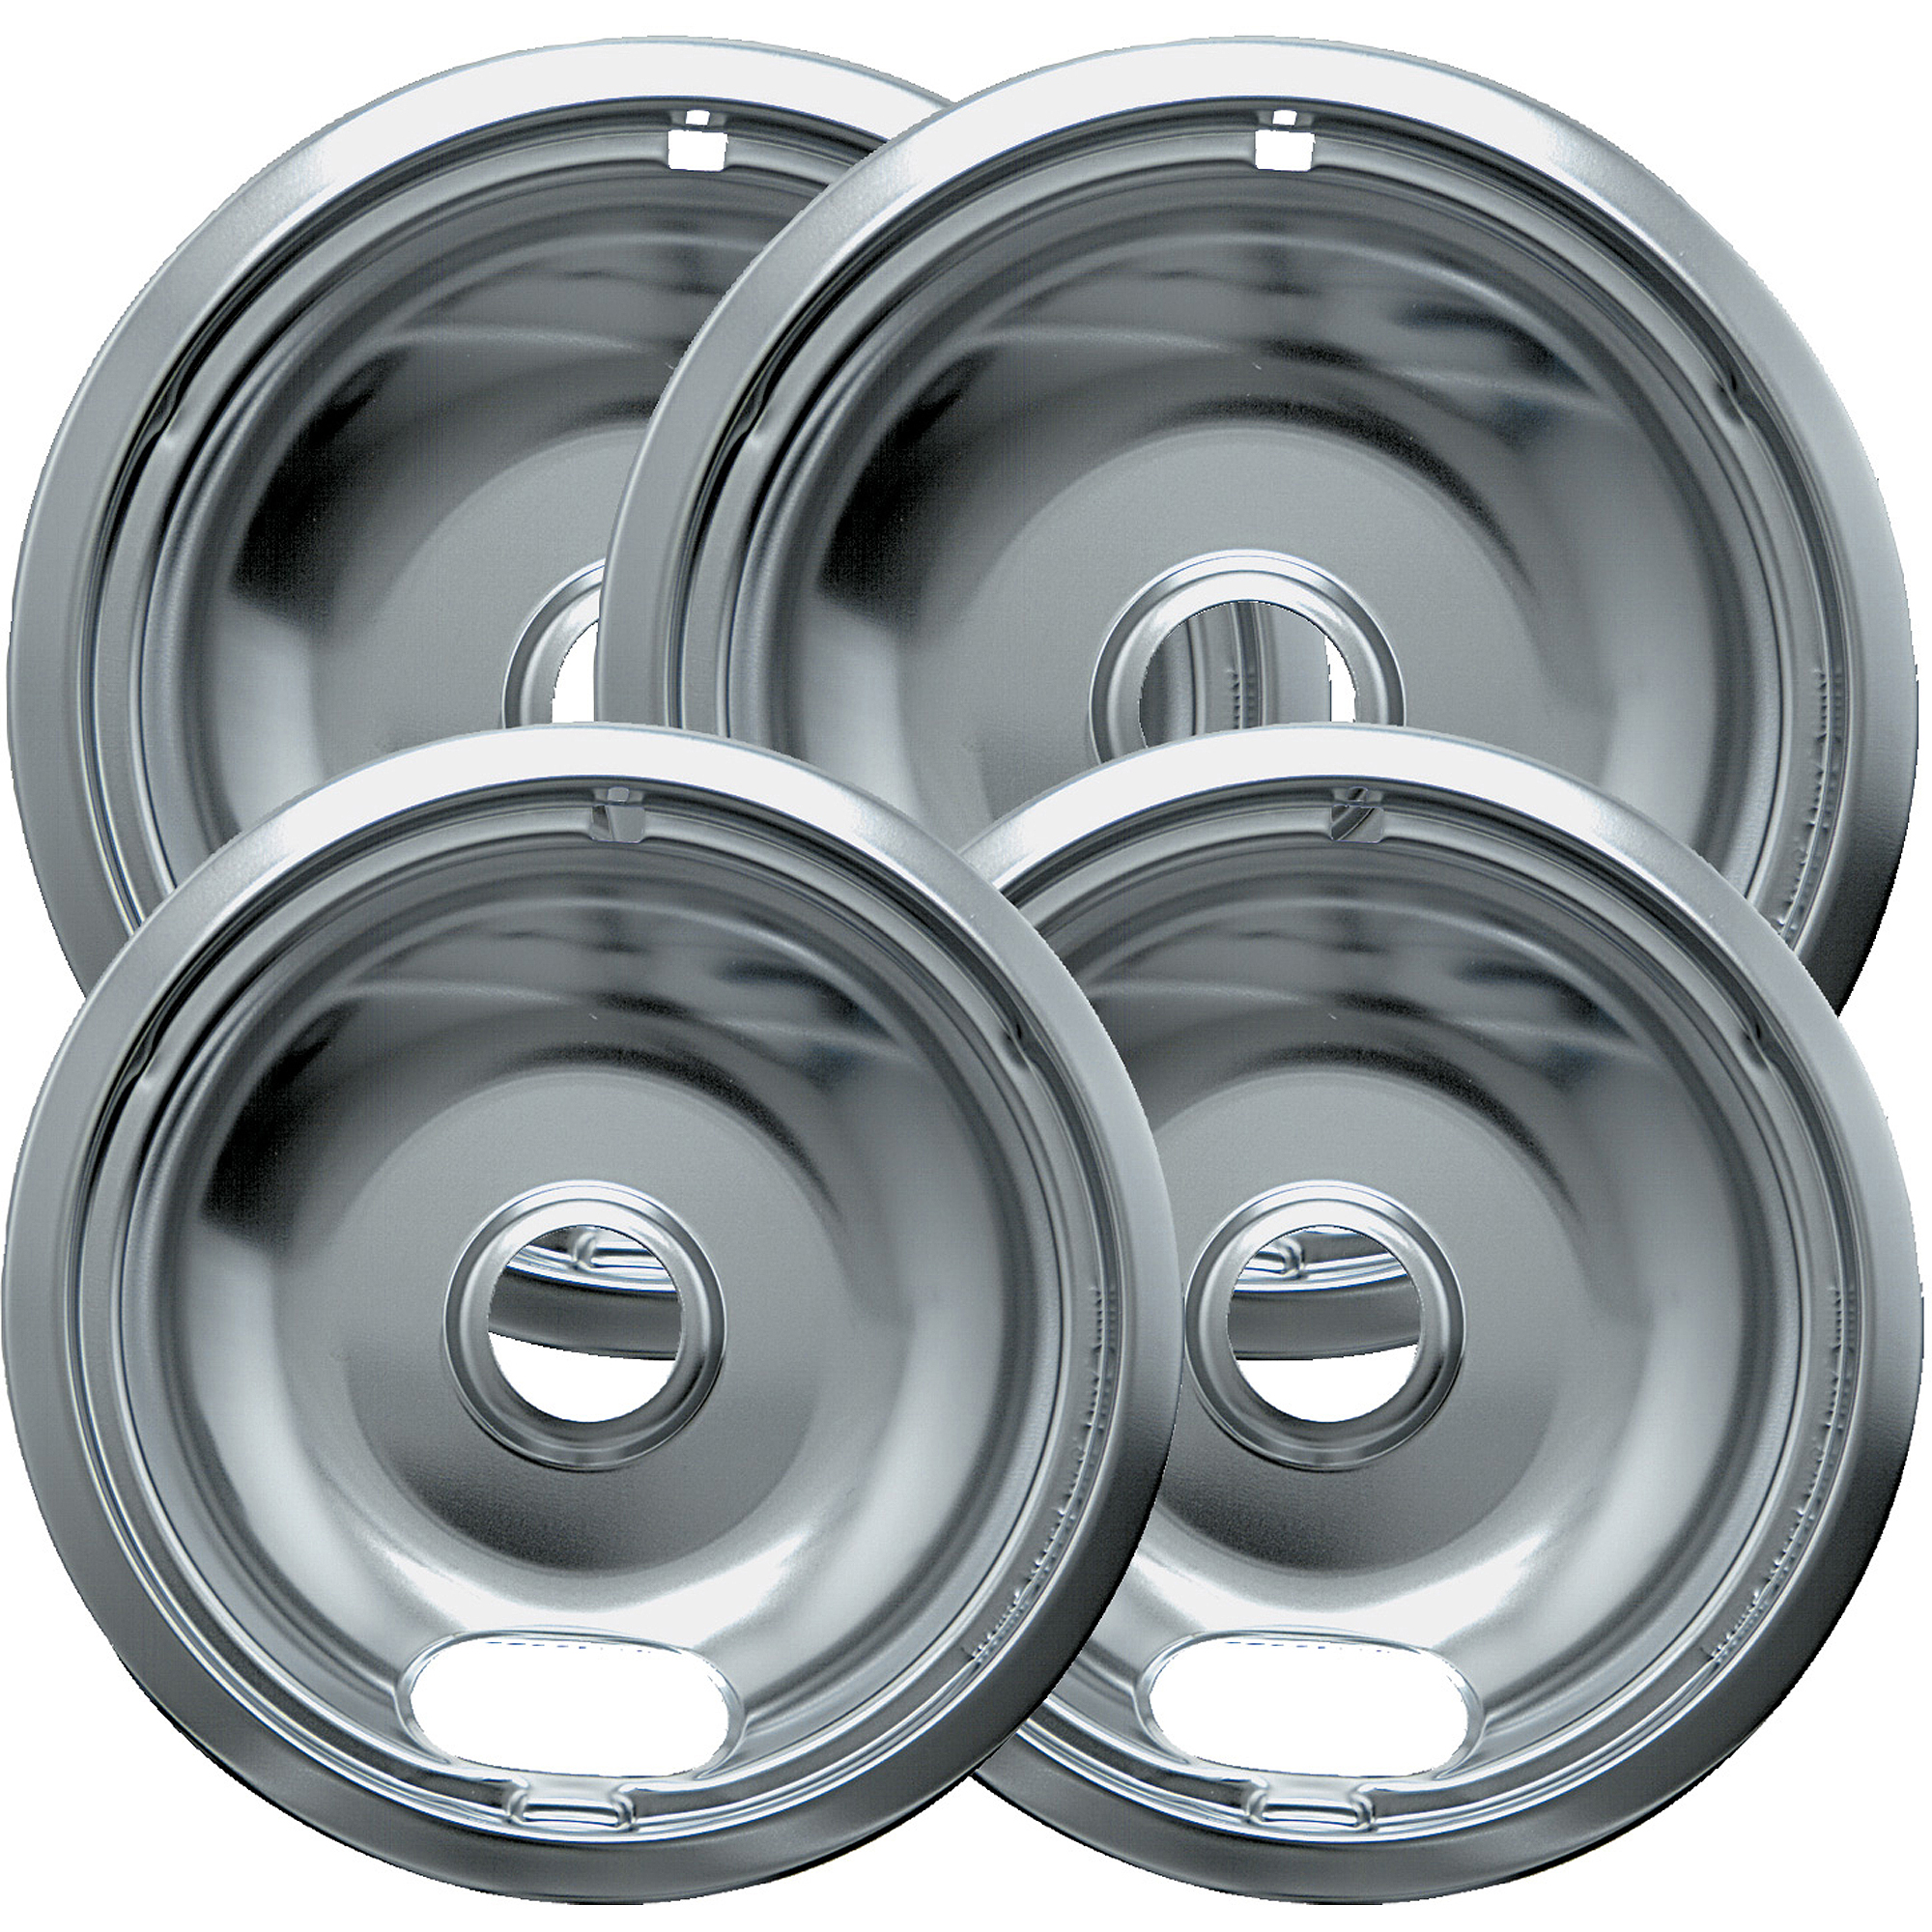 "Range Kleen 4-Piece Drip Bowl, Style A fits Plug-in Electric Ranges Amana, Crosley, Frigidaire, Kenmore"", Maytag, Whirlpool, Chrome"